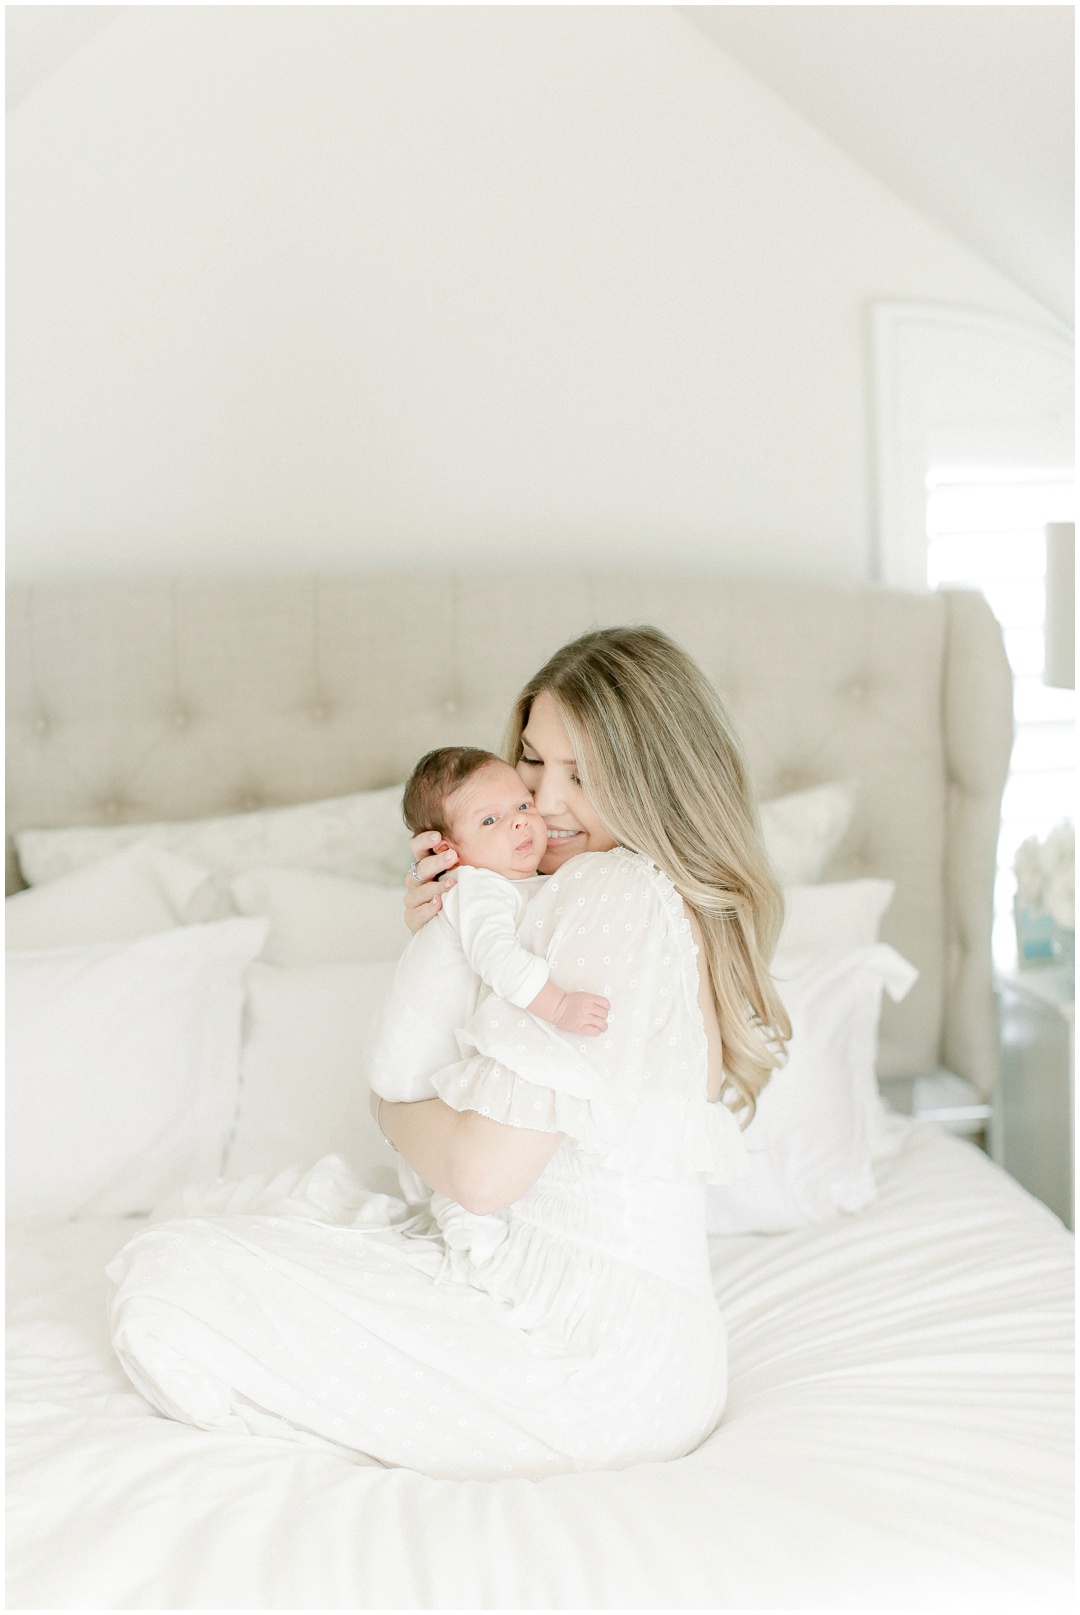 Newport_Beach_Newborn_Light_Airy_Natural_Photographer_Newport_Beach_Photographer_Orange_County_Family_Photographer_Cori_Kleckner_Photography_Huntington_Beach_Photographer_Family_OC_Maternity_Breanna_Santillo__3682.jpg